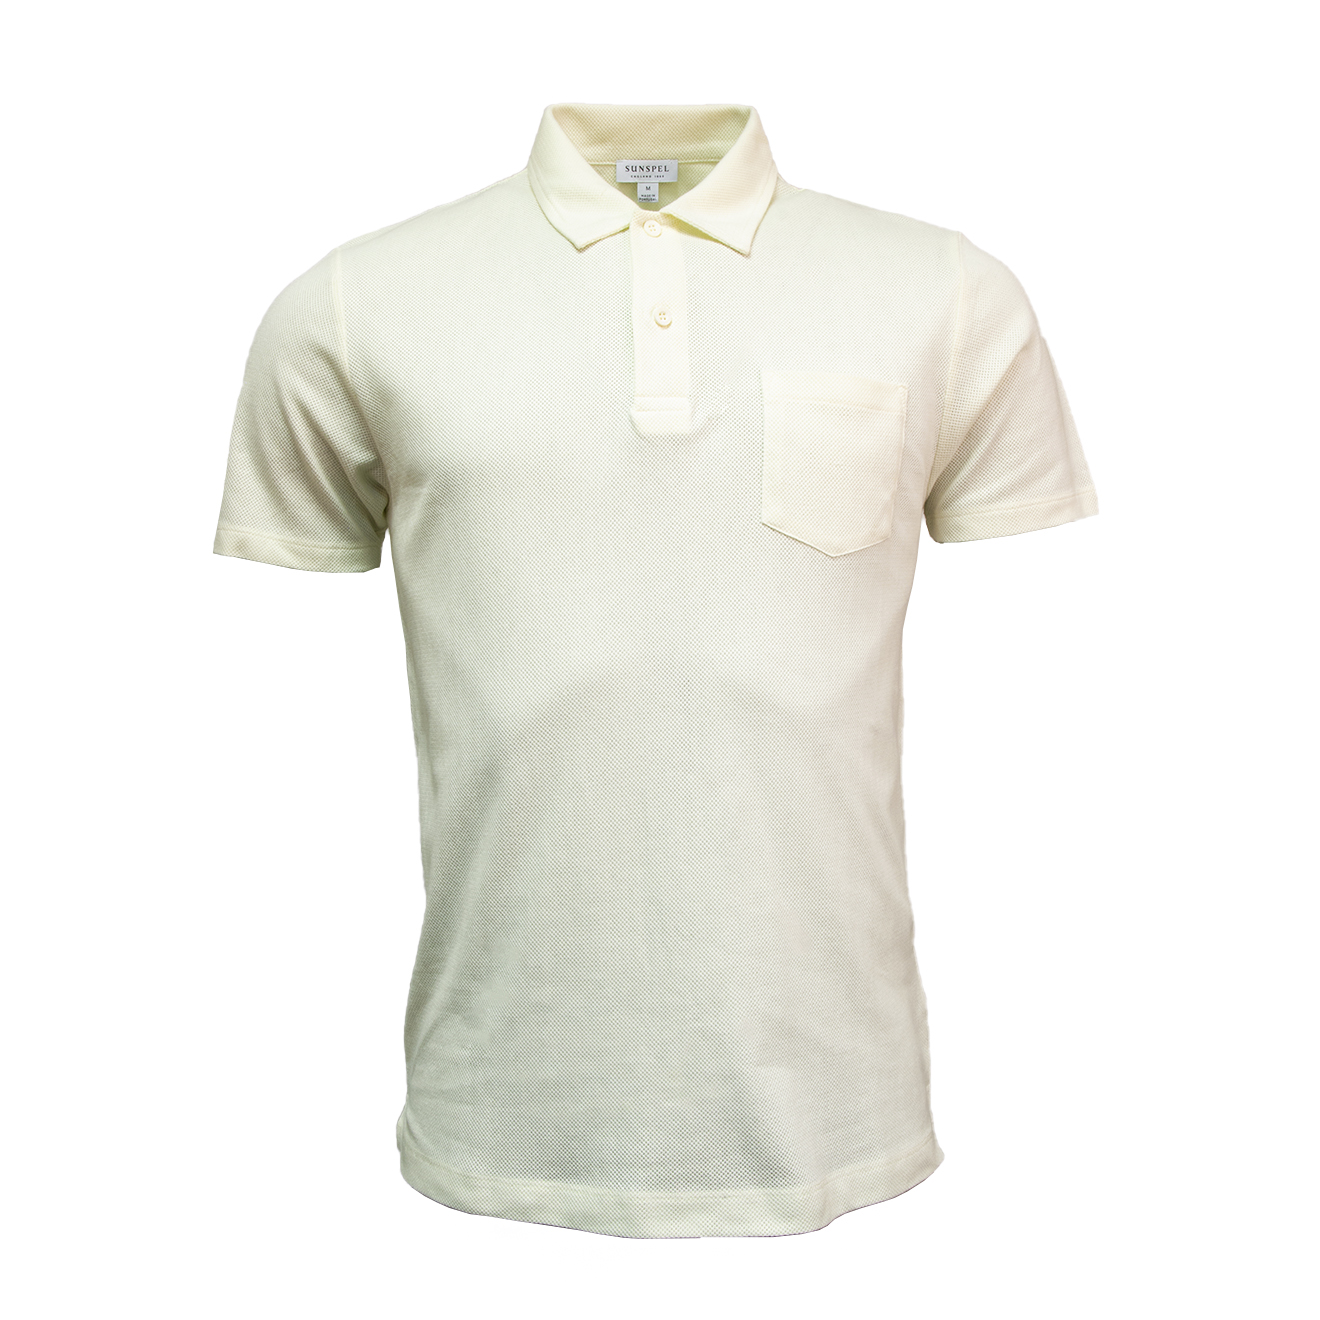 0212d0ade Sunspel Riviera S S Polo Shirt Archive White - The Sporting Lodge